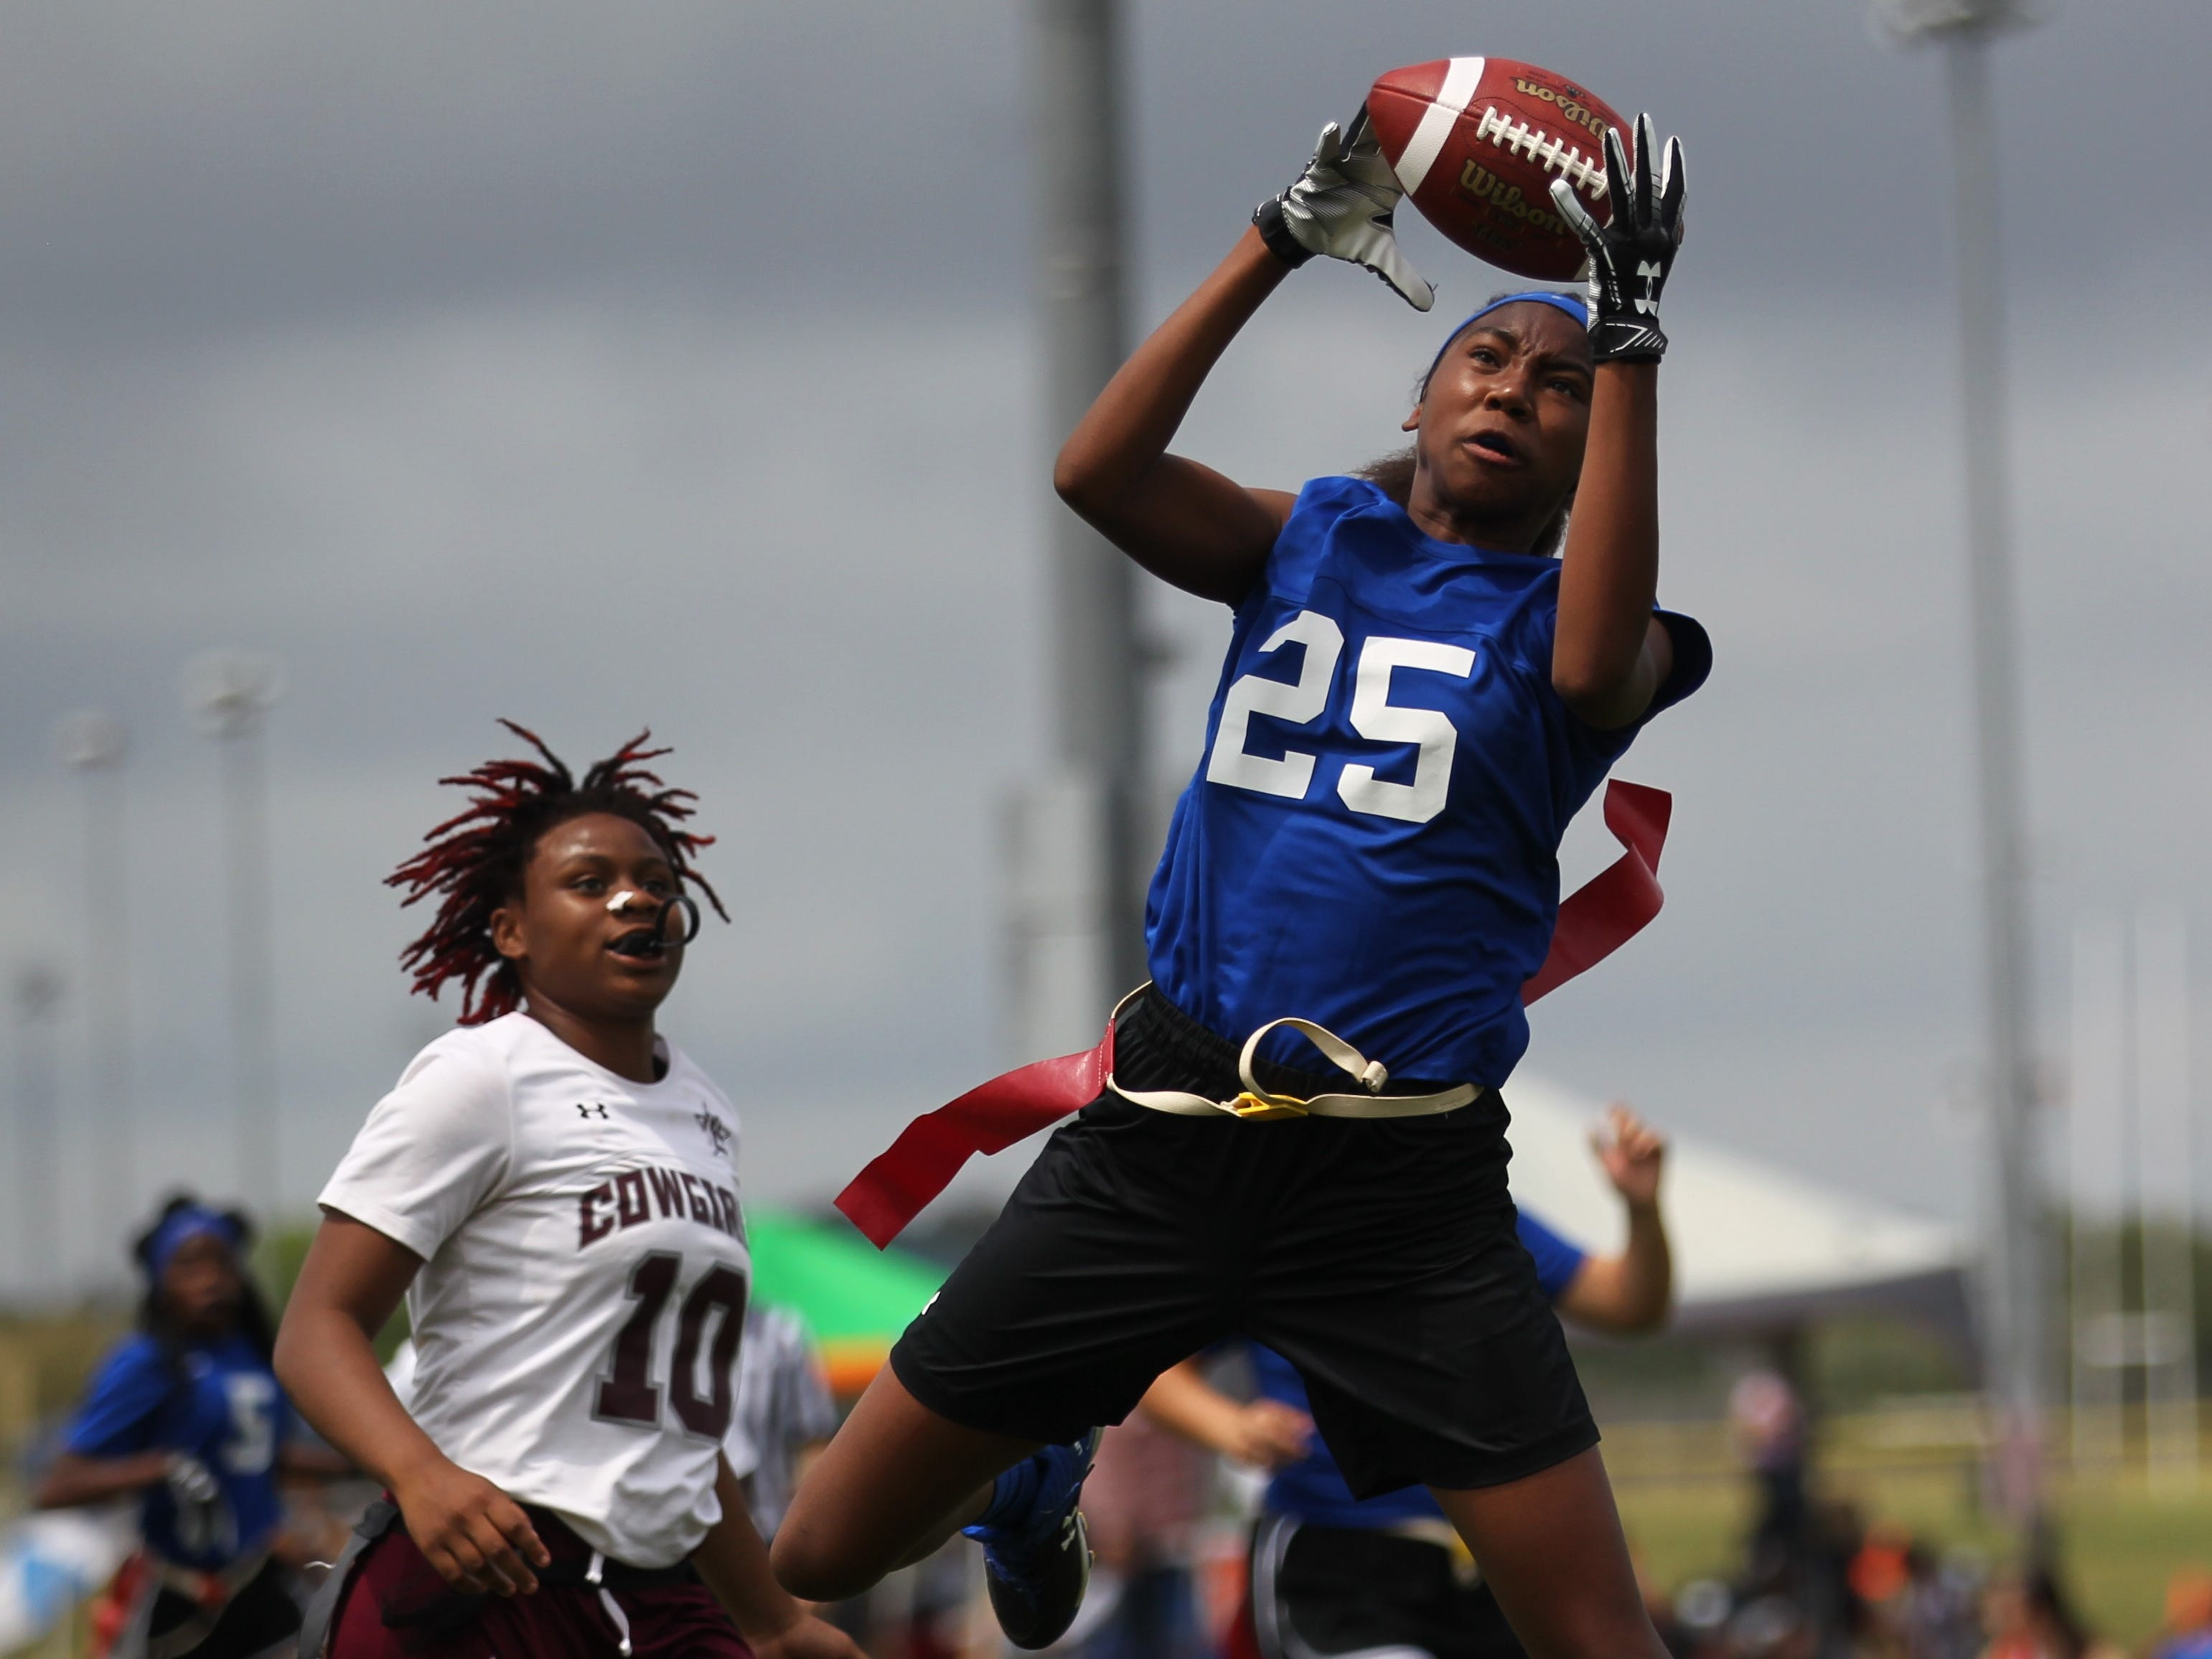 Belleview plays Madison County in the 2019 Capital City Classic flag football tournament at the FSU Rec SportsPlex on April 6, 2019.